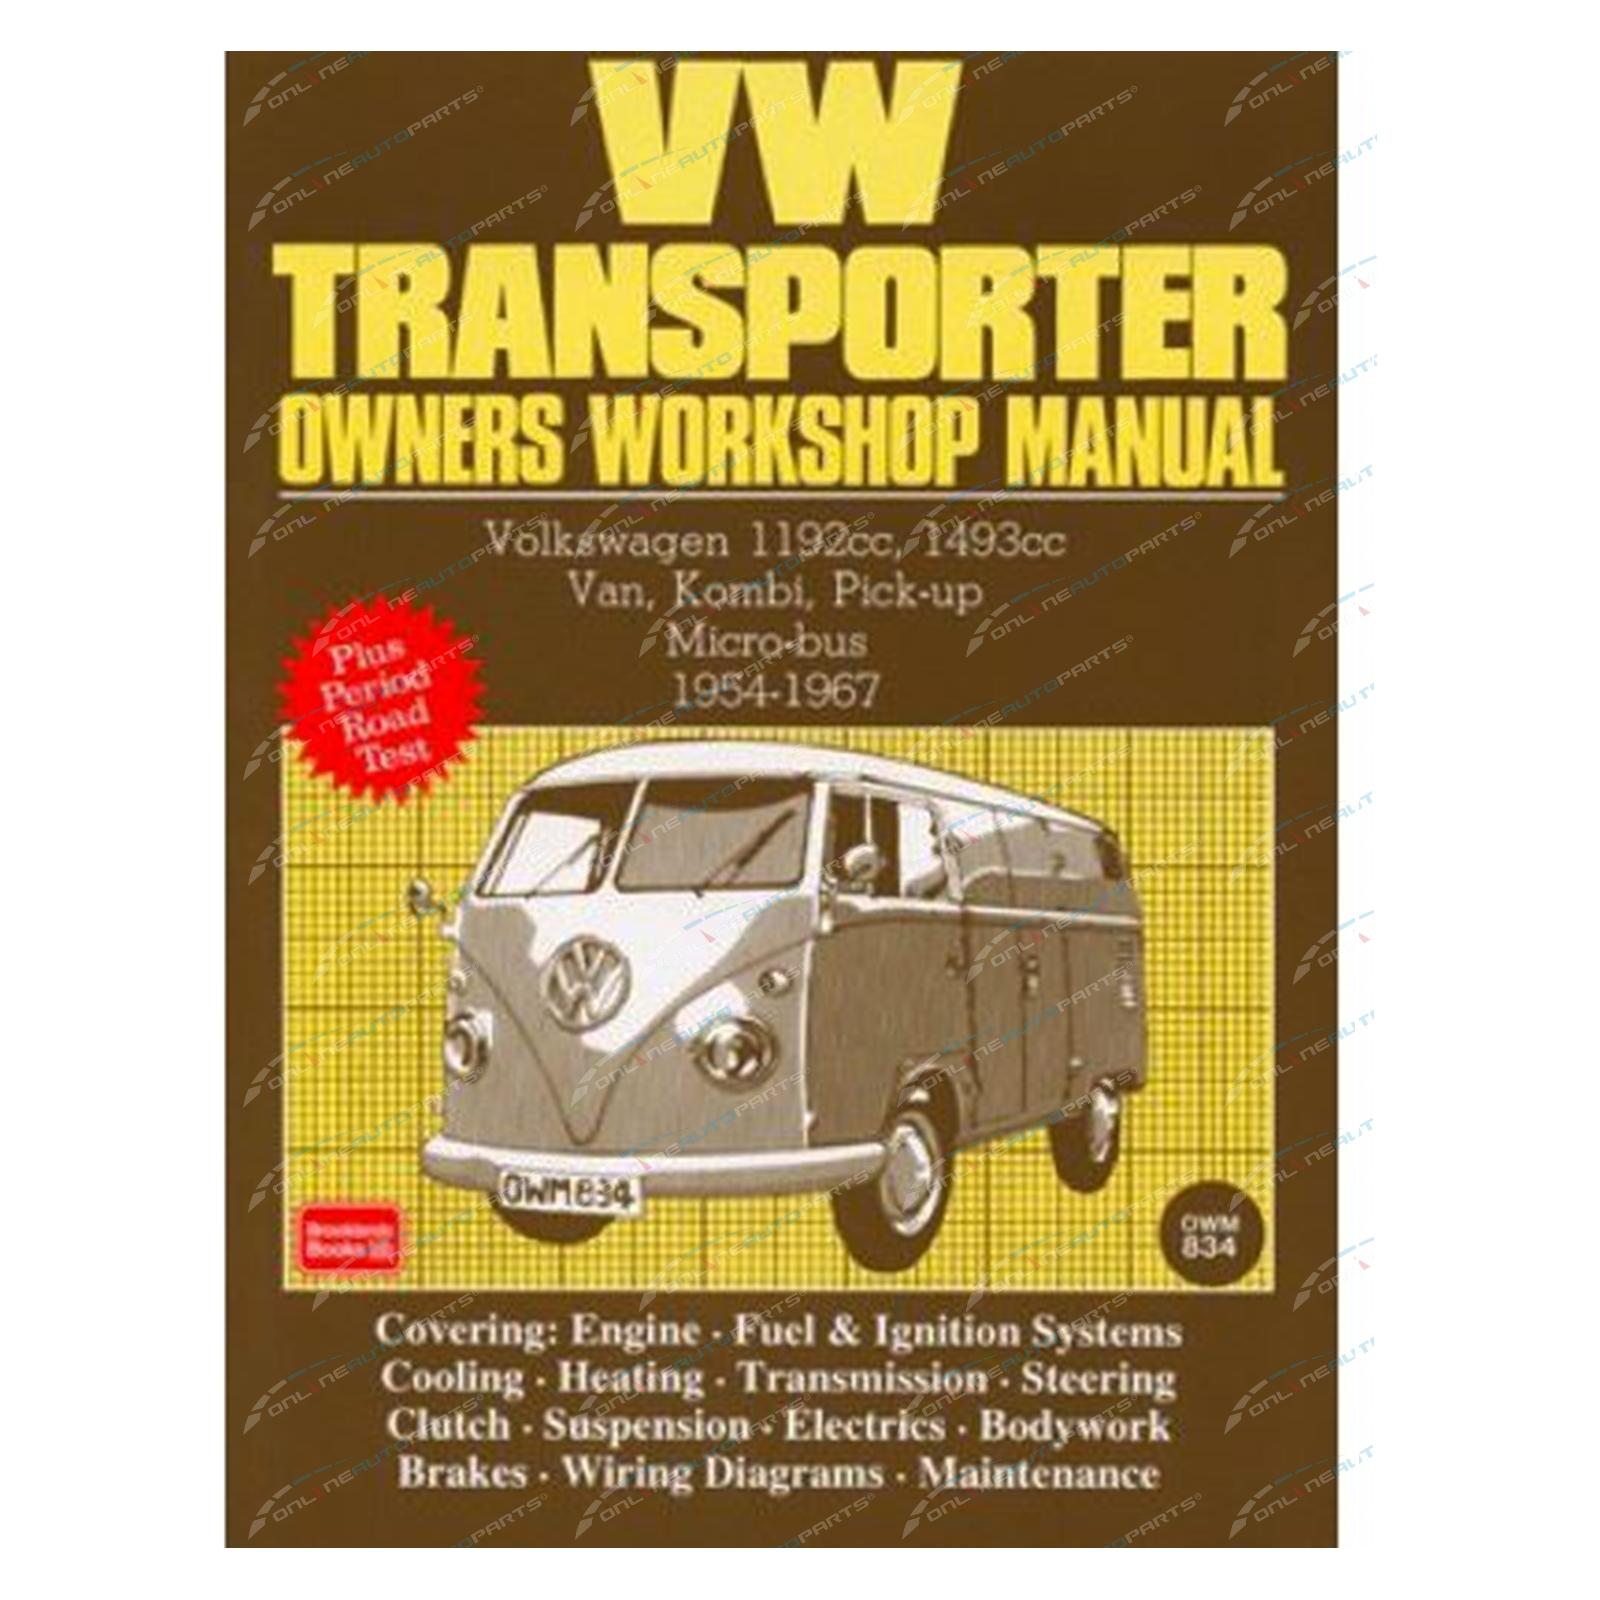 hight resolution of click to enlarge vw transporter owners workshop repair manual volkswagen brooklands books 1954 to 1967